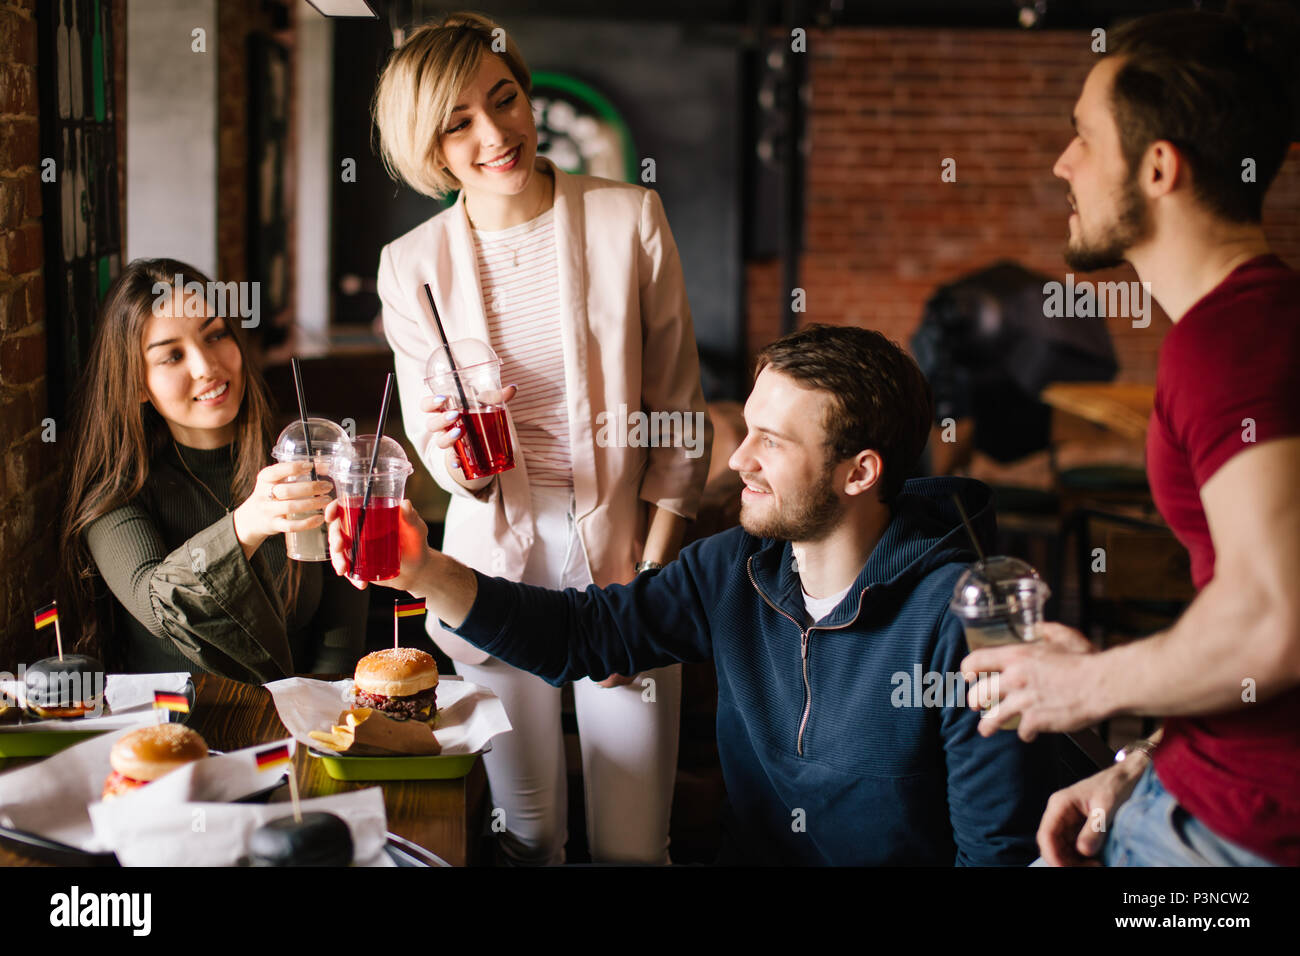 Friends clinking glasses together in a cheer at bar. - Stock Image